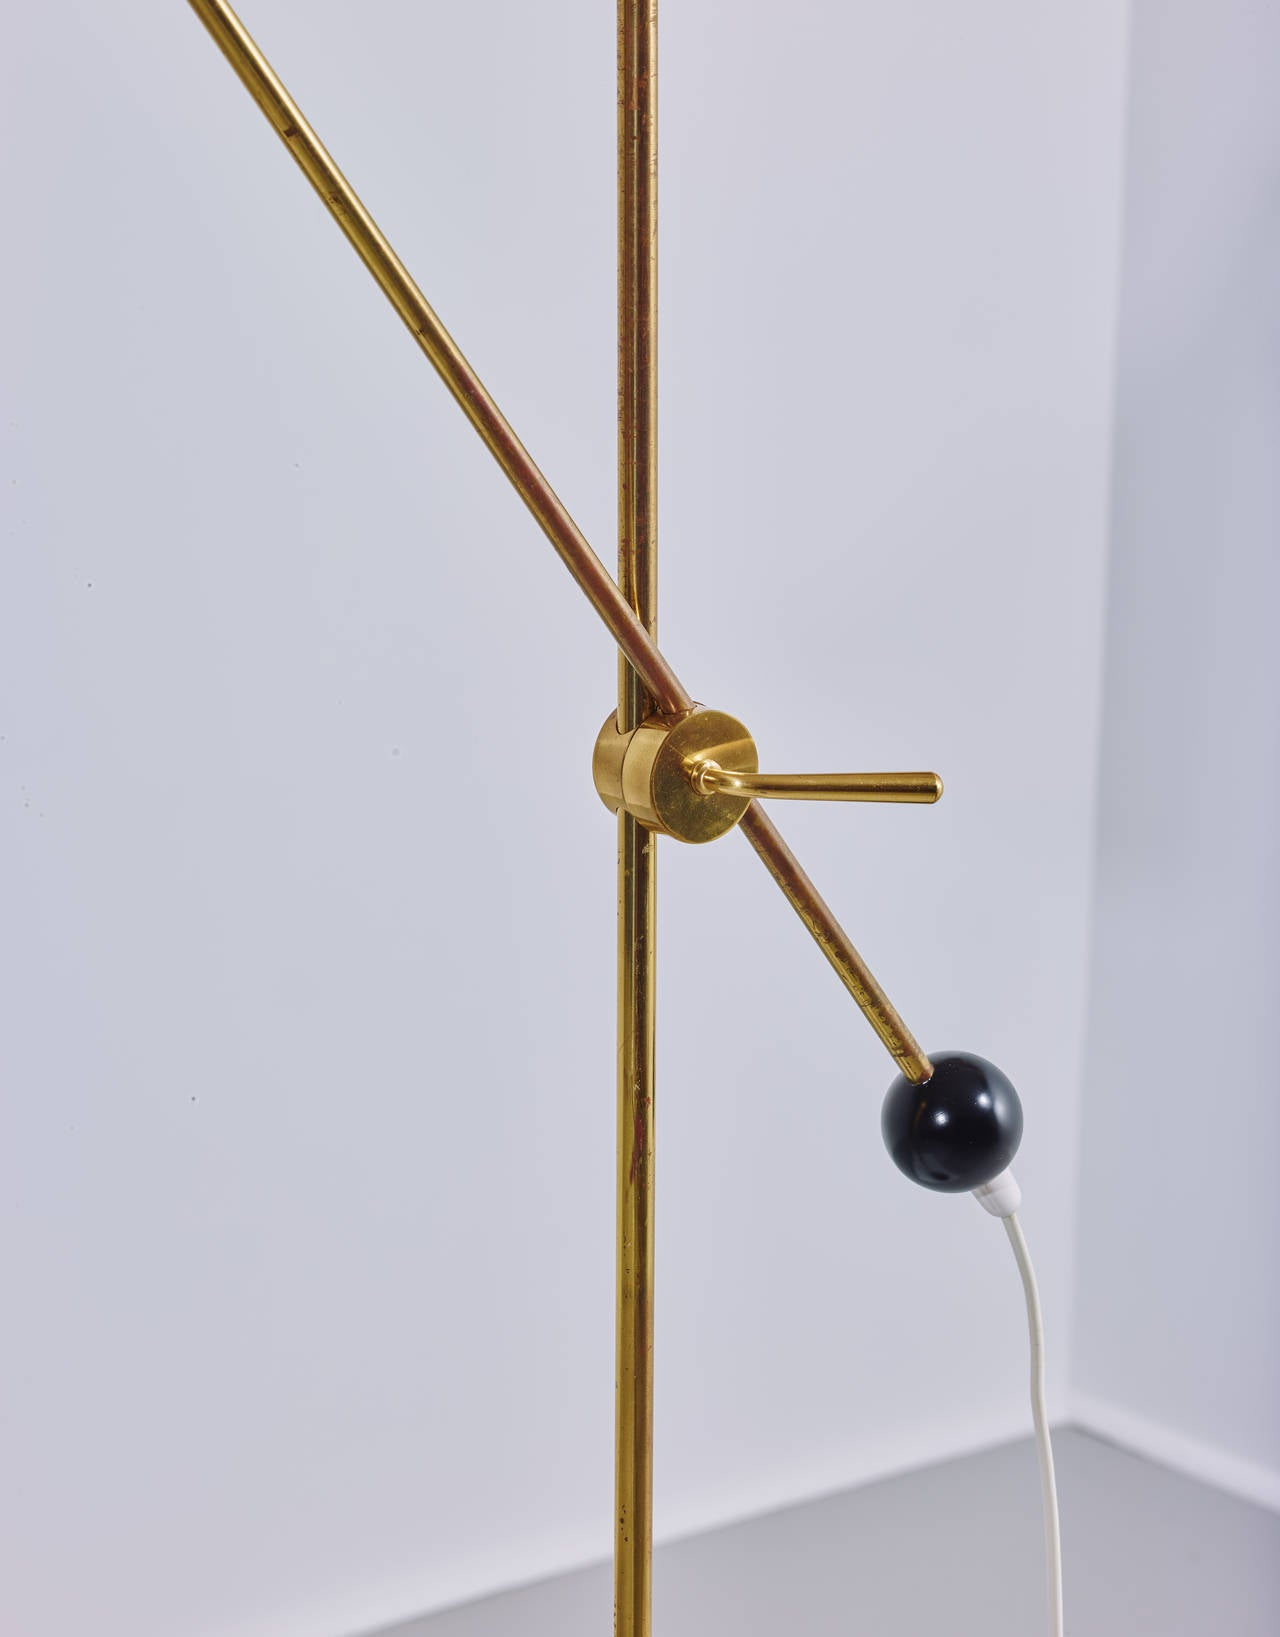 Enameled Tapio Wirkkala Floor Lamp, Model K10-11, 1958